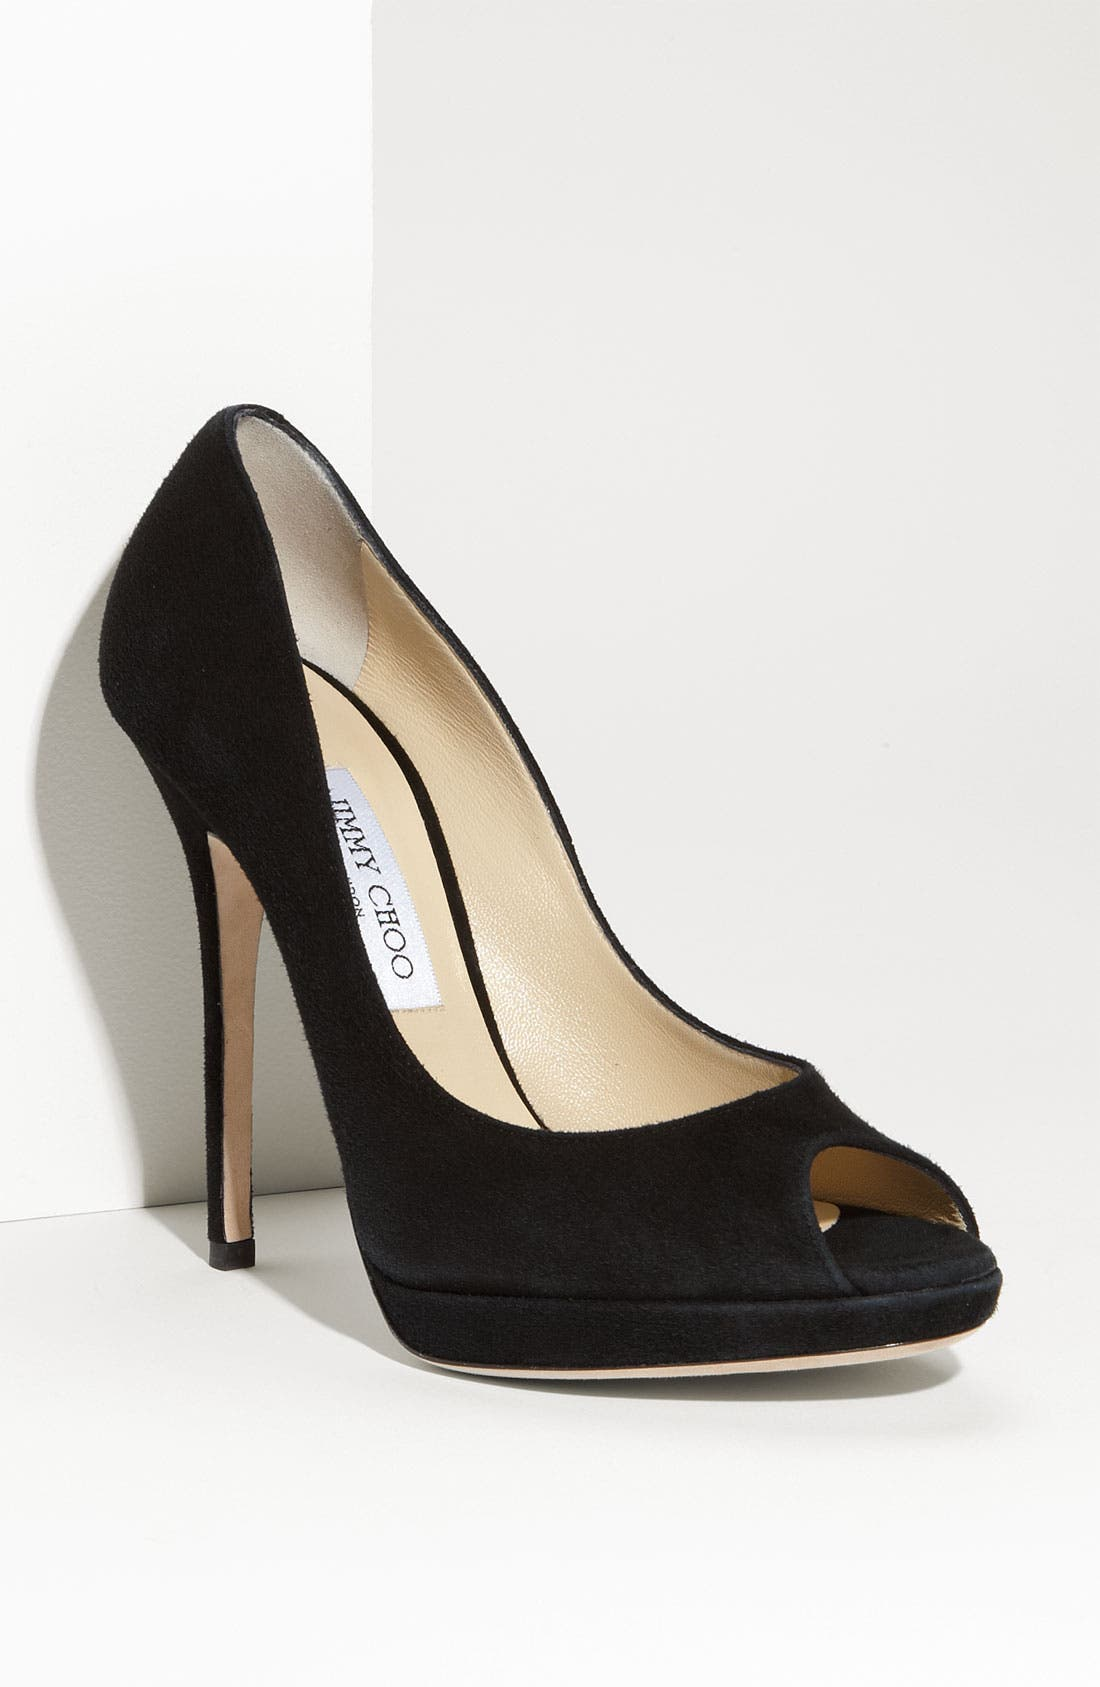 Main Image - Jimmy Choo 'Quiet' Platform Pump